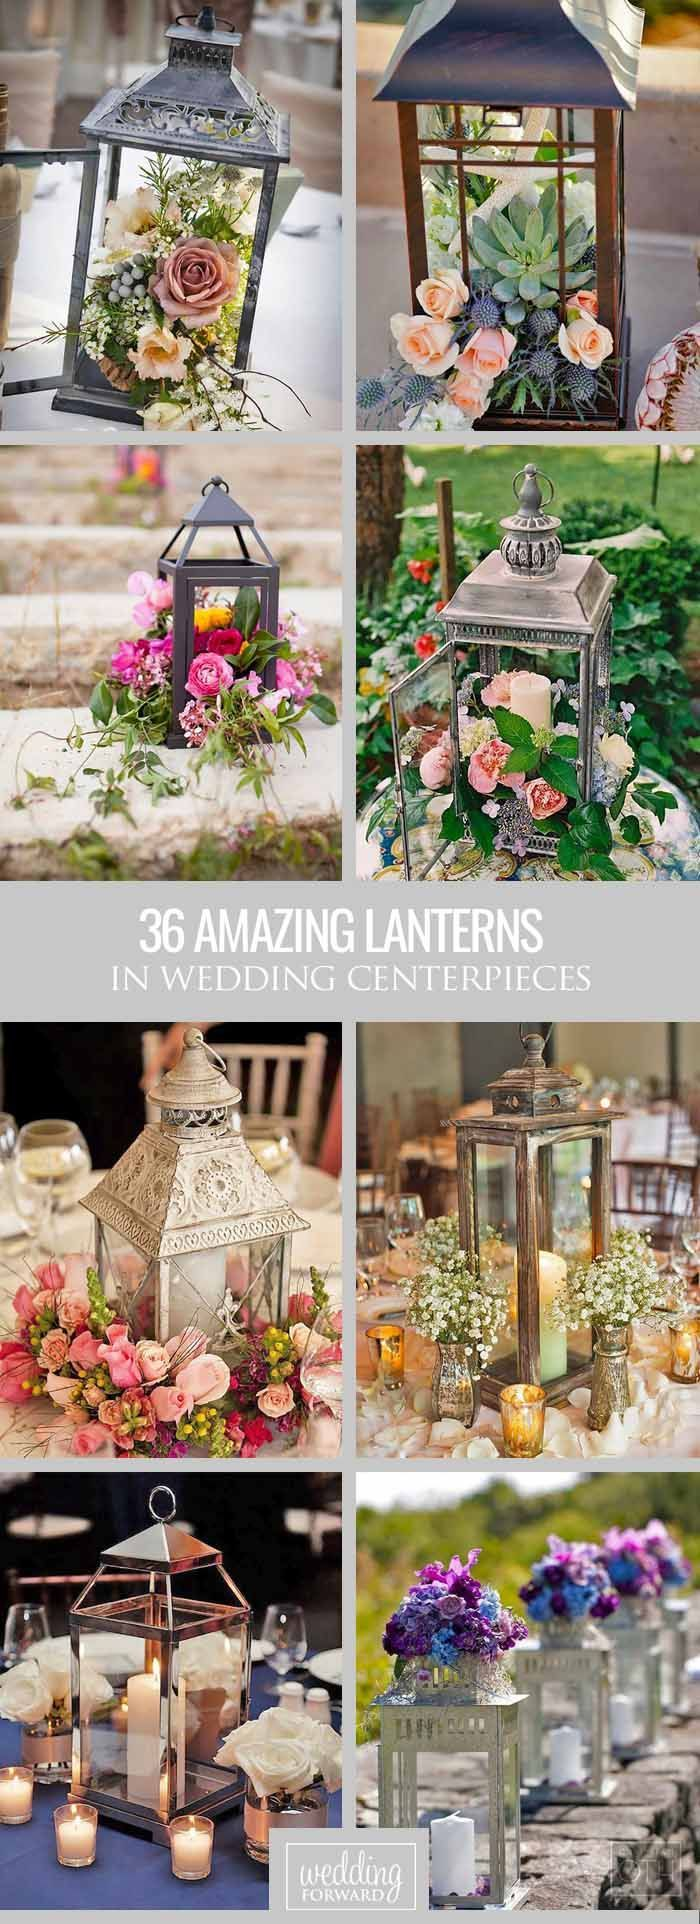 diy beach theme wedding centerpieces%0A    Amazing Lantern Wedding Centerpiece Ideas